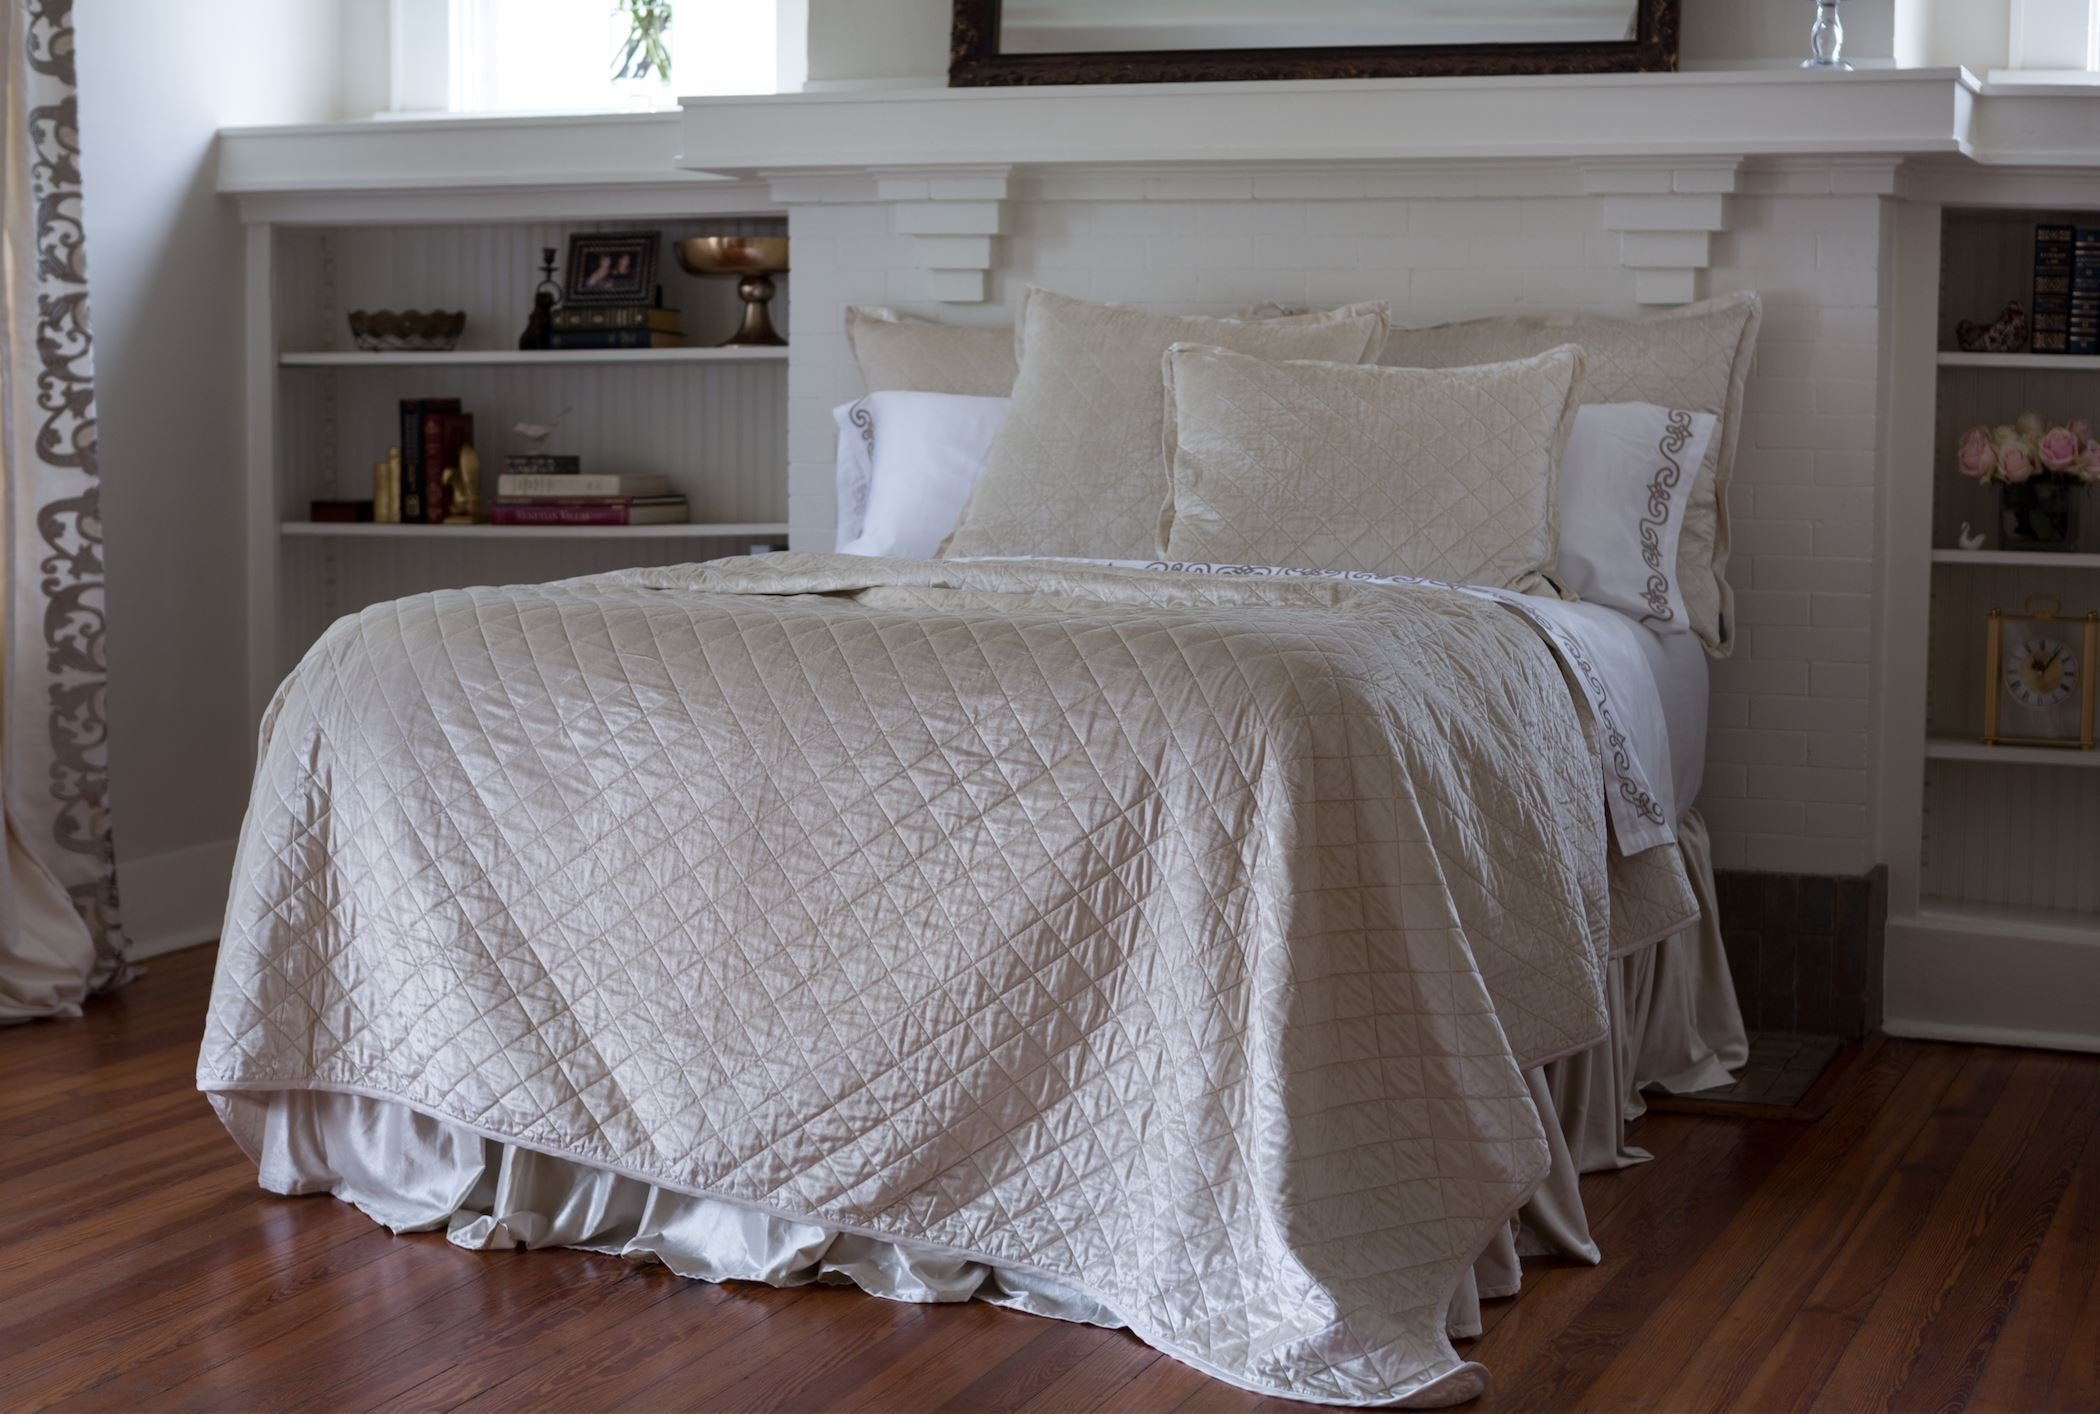 Chloe Ivory Velvet by Lili Alessandra - Quilt and Pillows